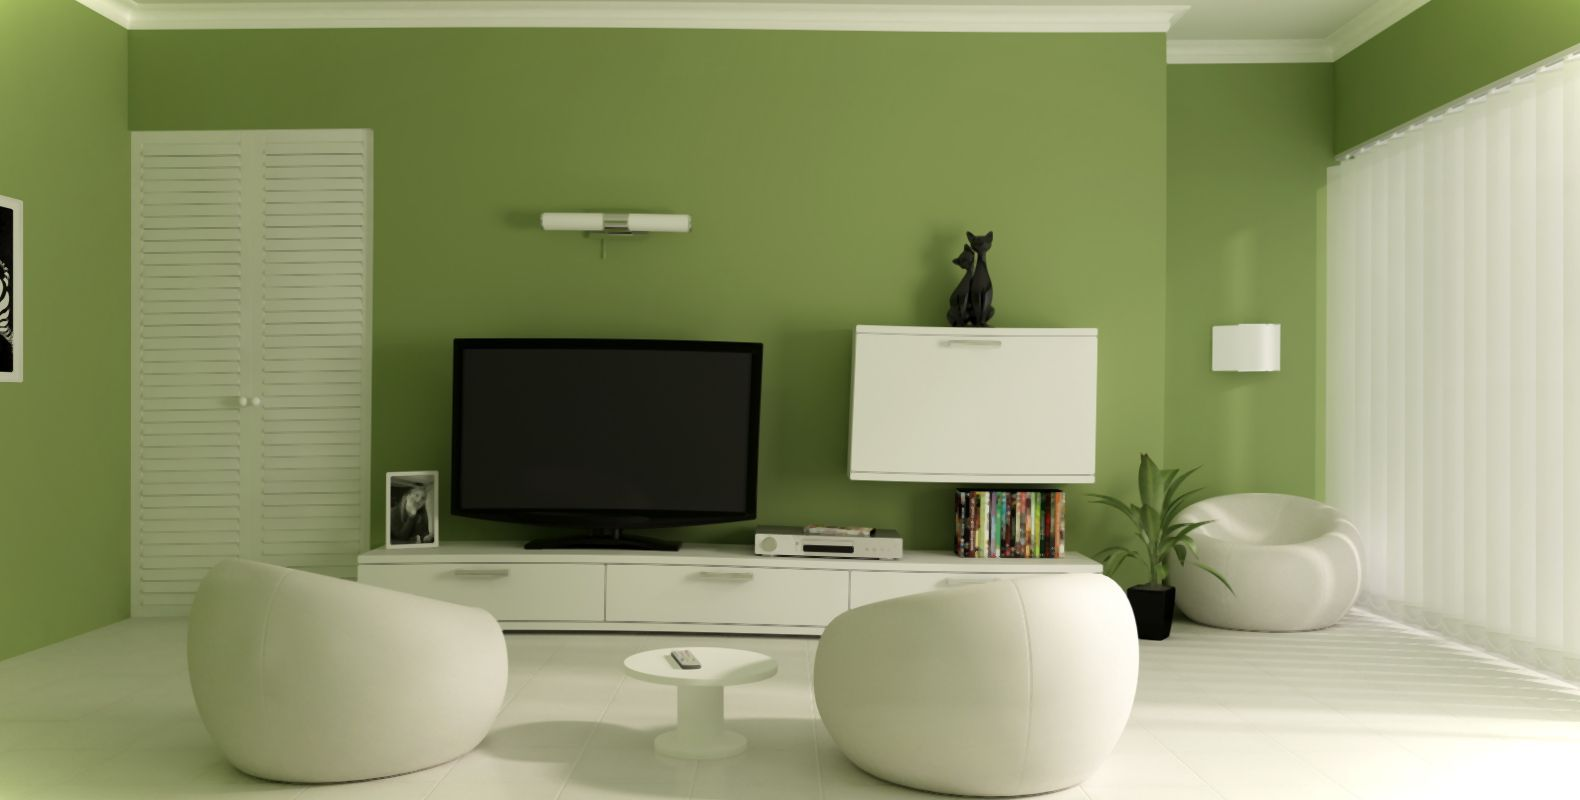 Rooms With Green Walls beautiful small living room design with green wall paint color and